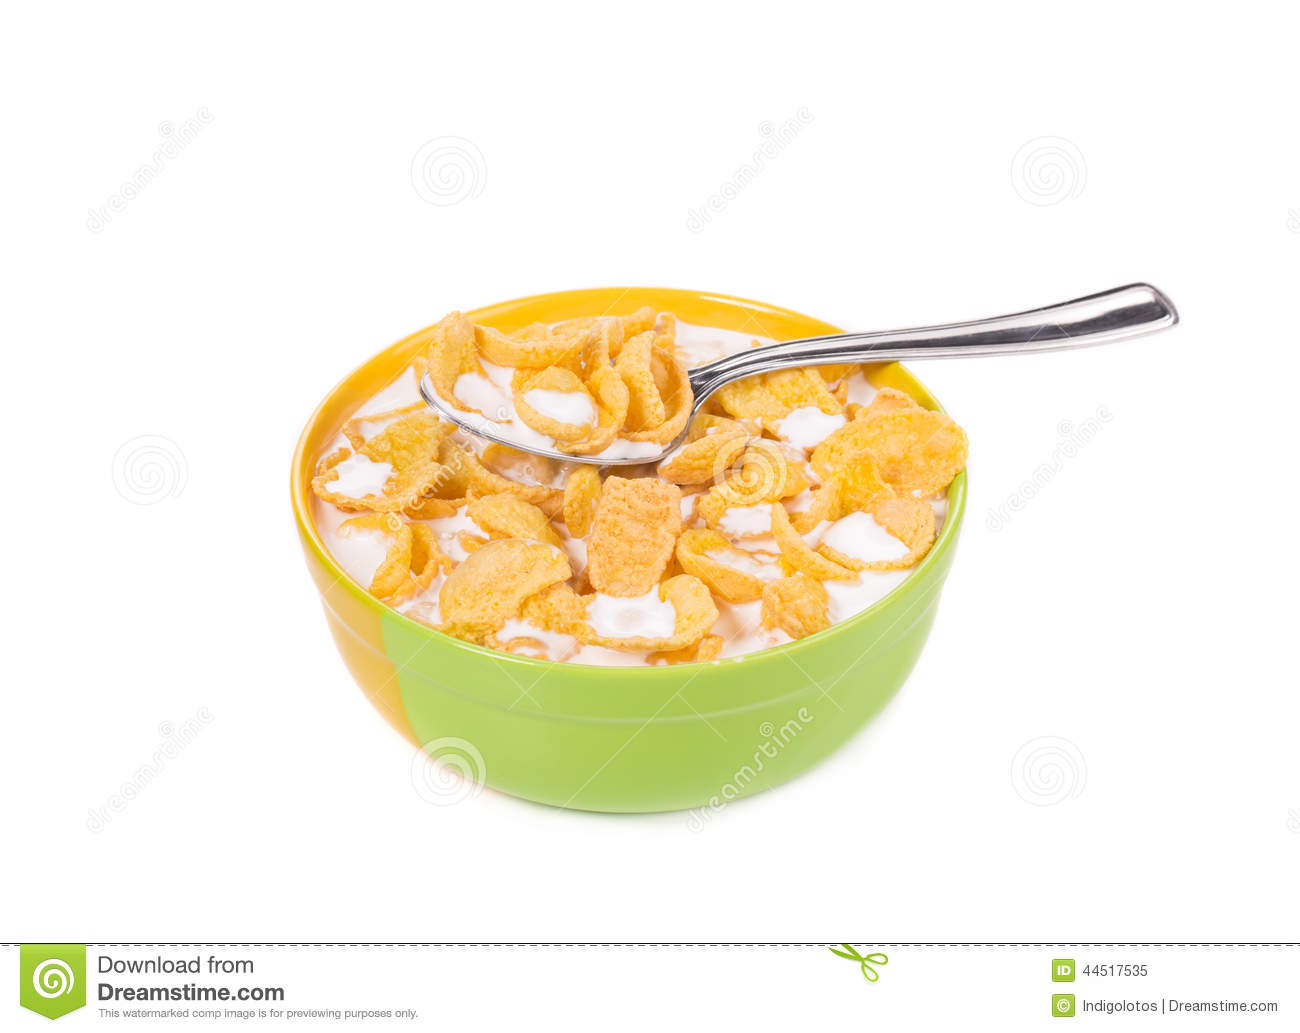 cereal-milk-bowl-white-background-44517535.jpg